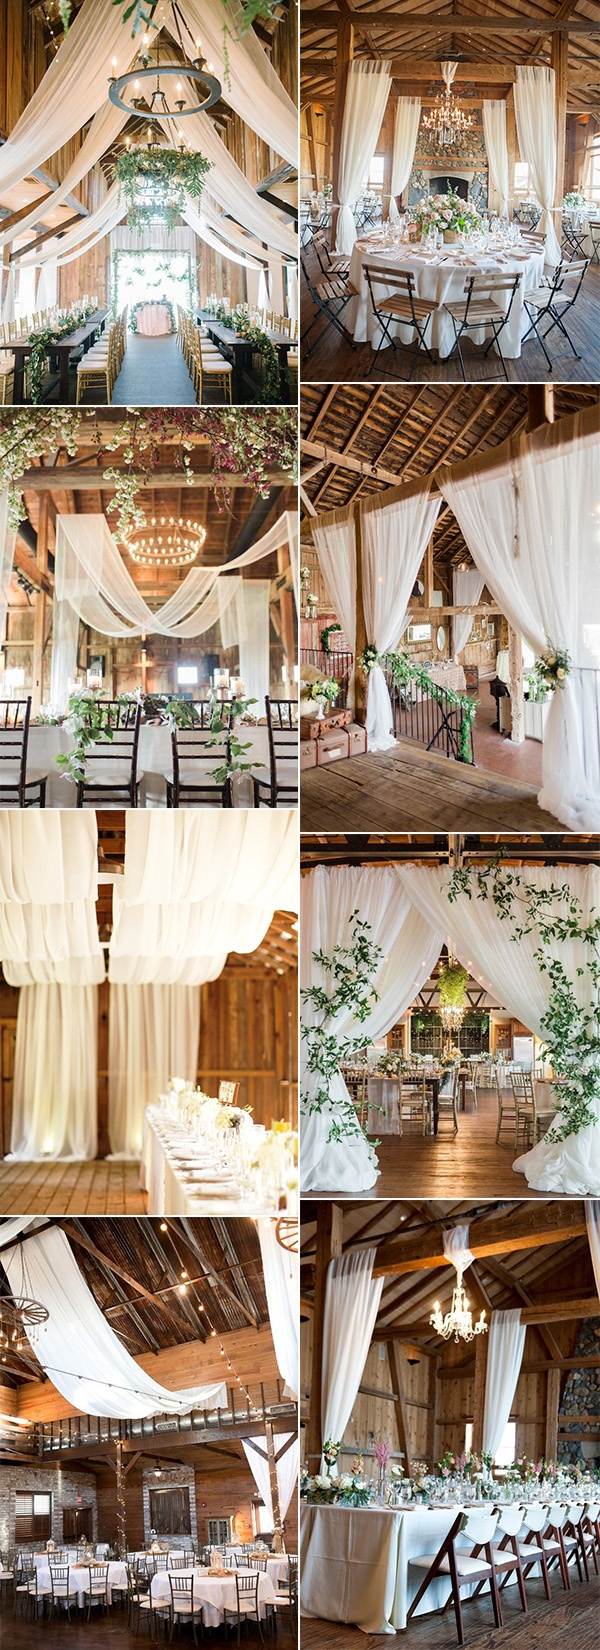 chic barn wedding reception ideas with fabric draping